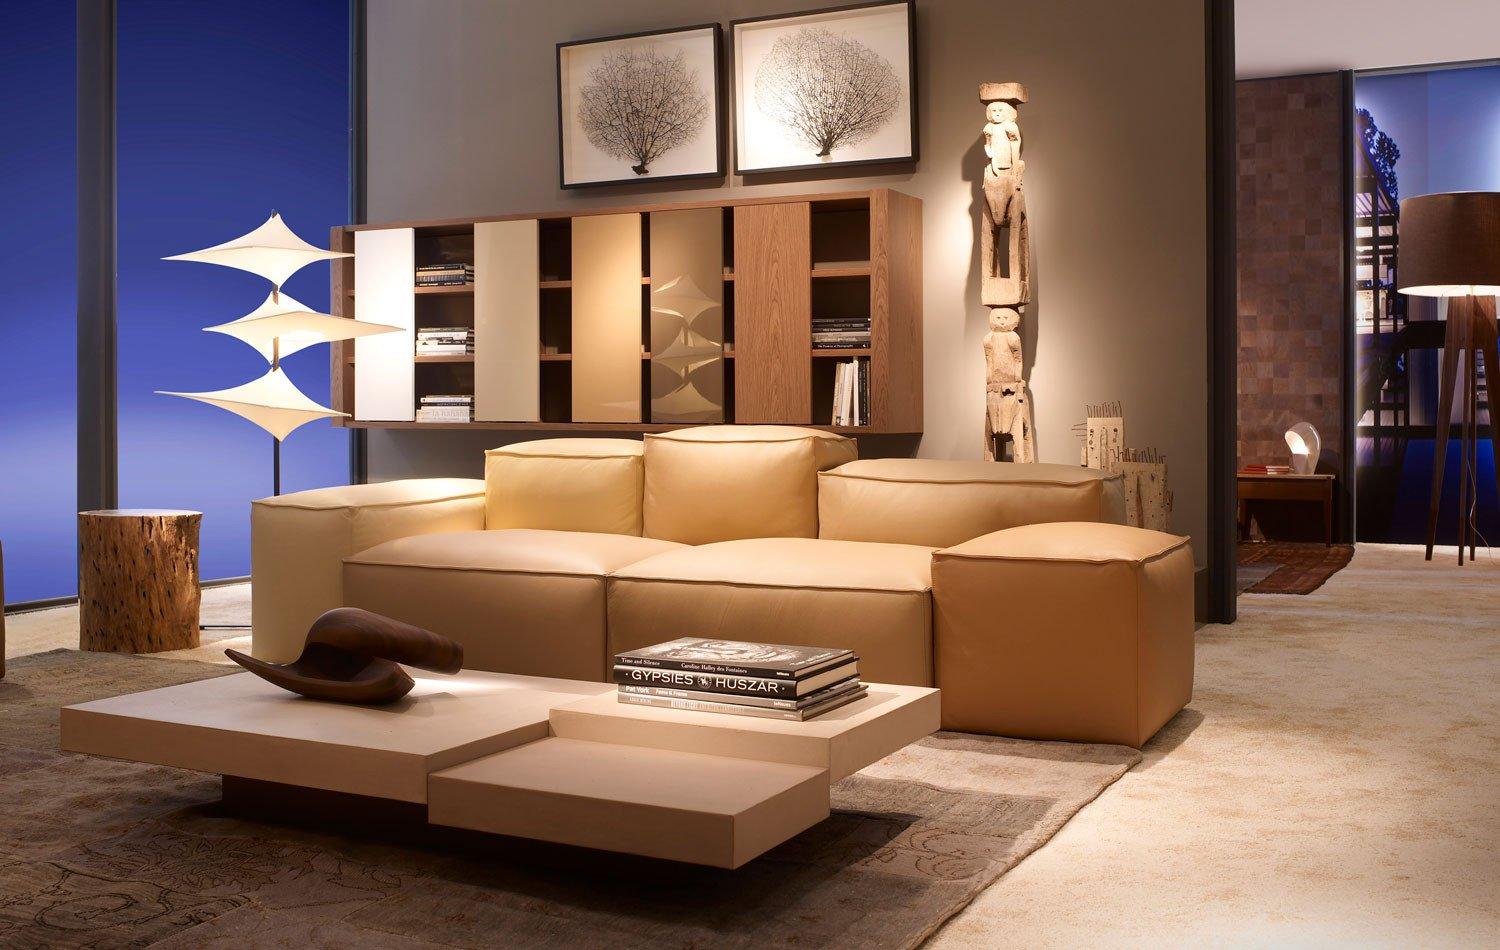 Contemporary Living Room sofas Awesome Living Room Inspiration 120 Modern sofas by Roche Bobois Part 3 3